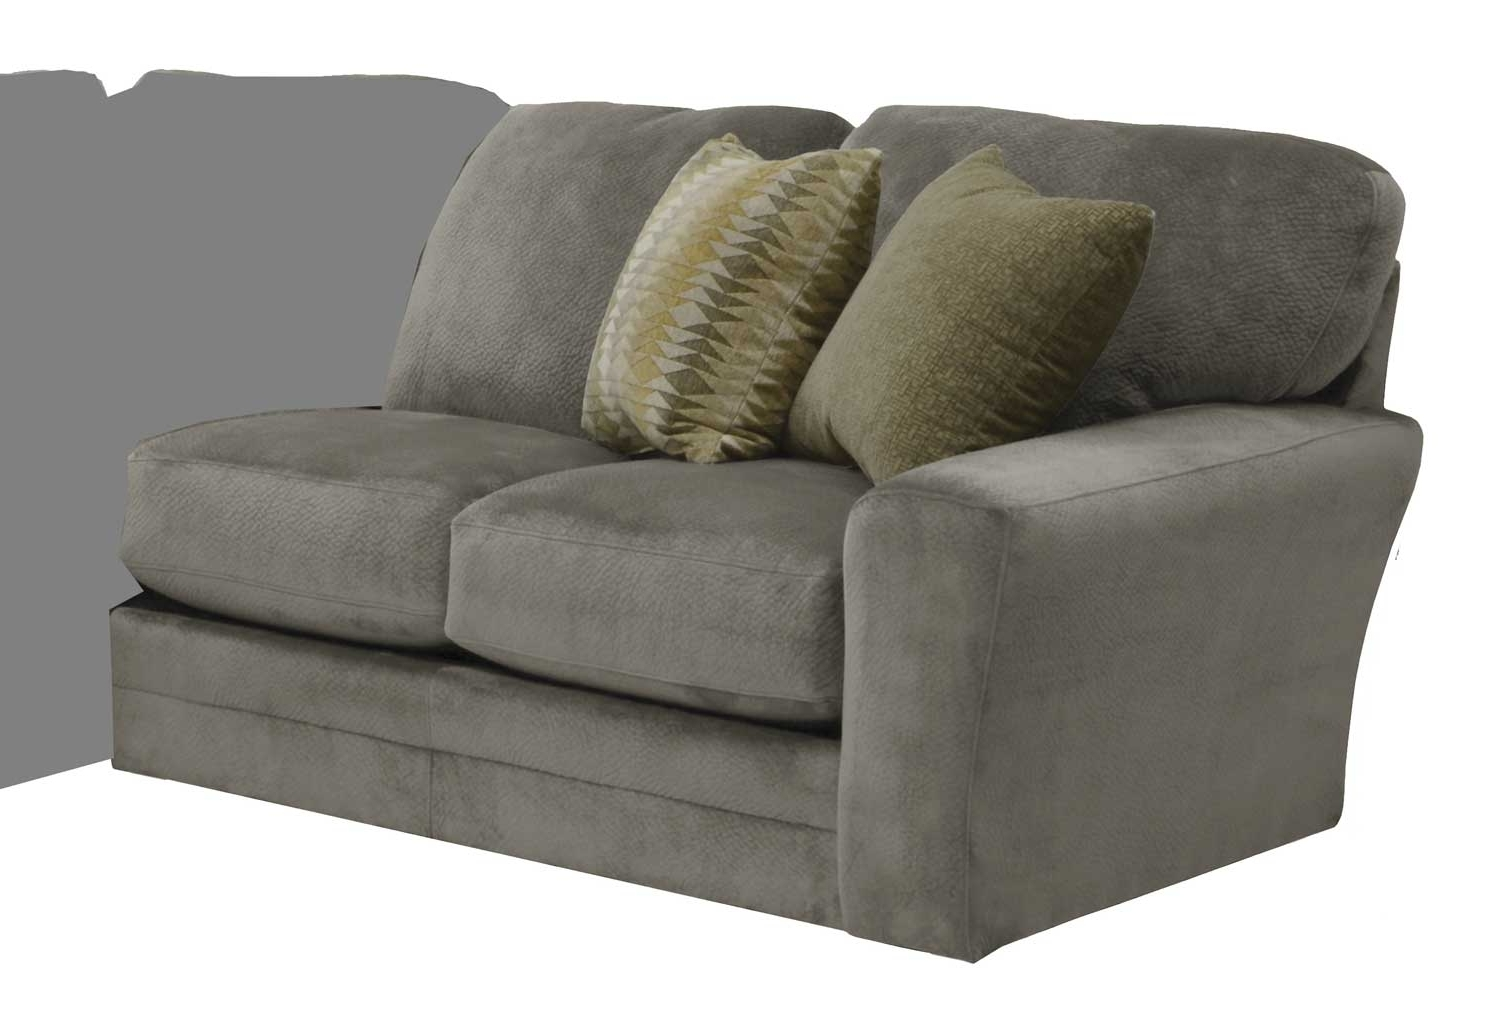 Removable Cover Sofa – Home And Textiles Regarding Well Known Sofas With Removable Covers (View 8 of 20)